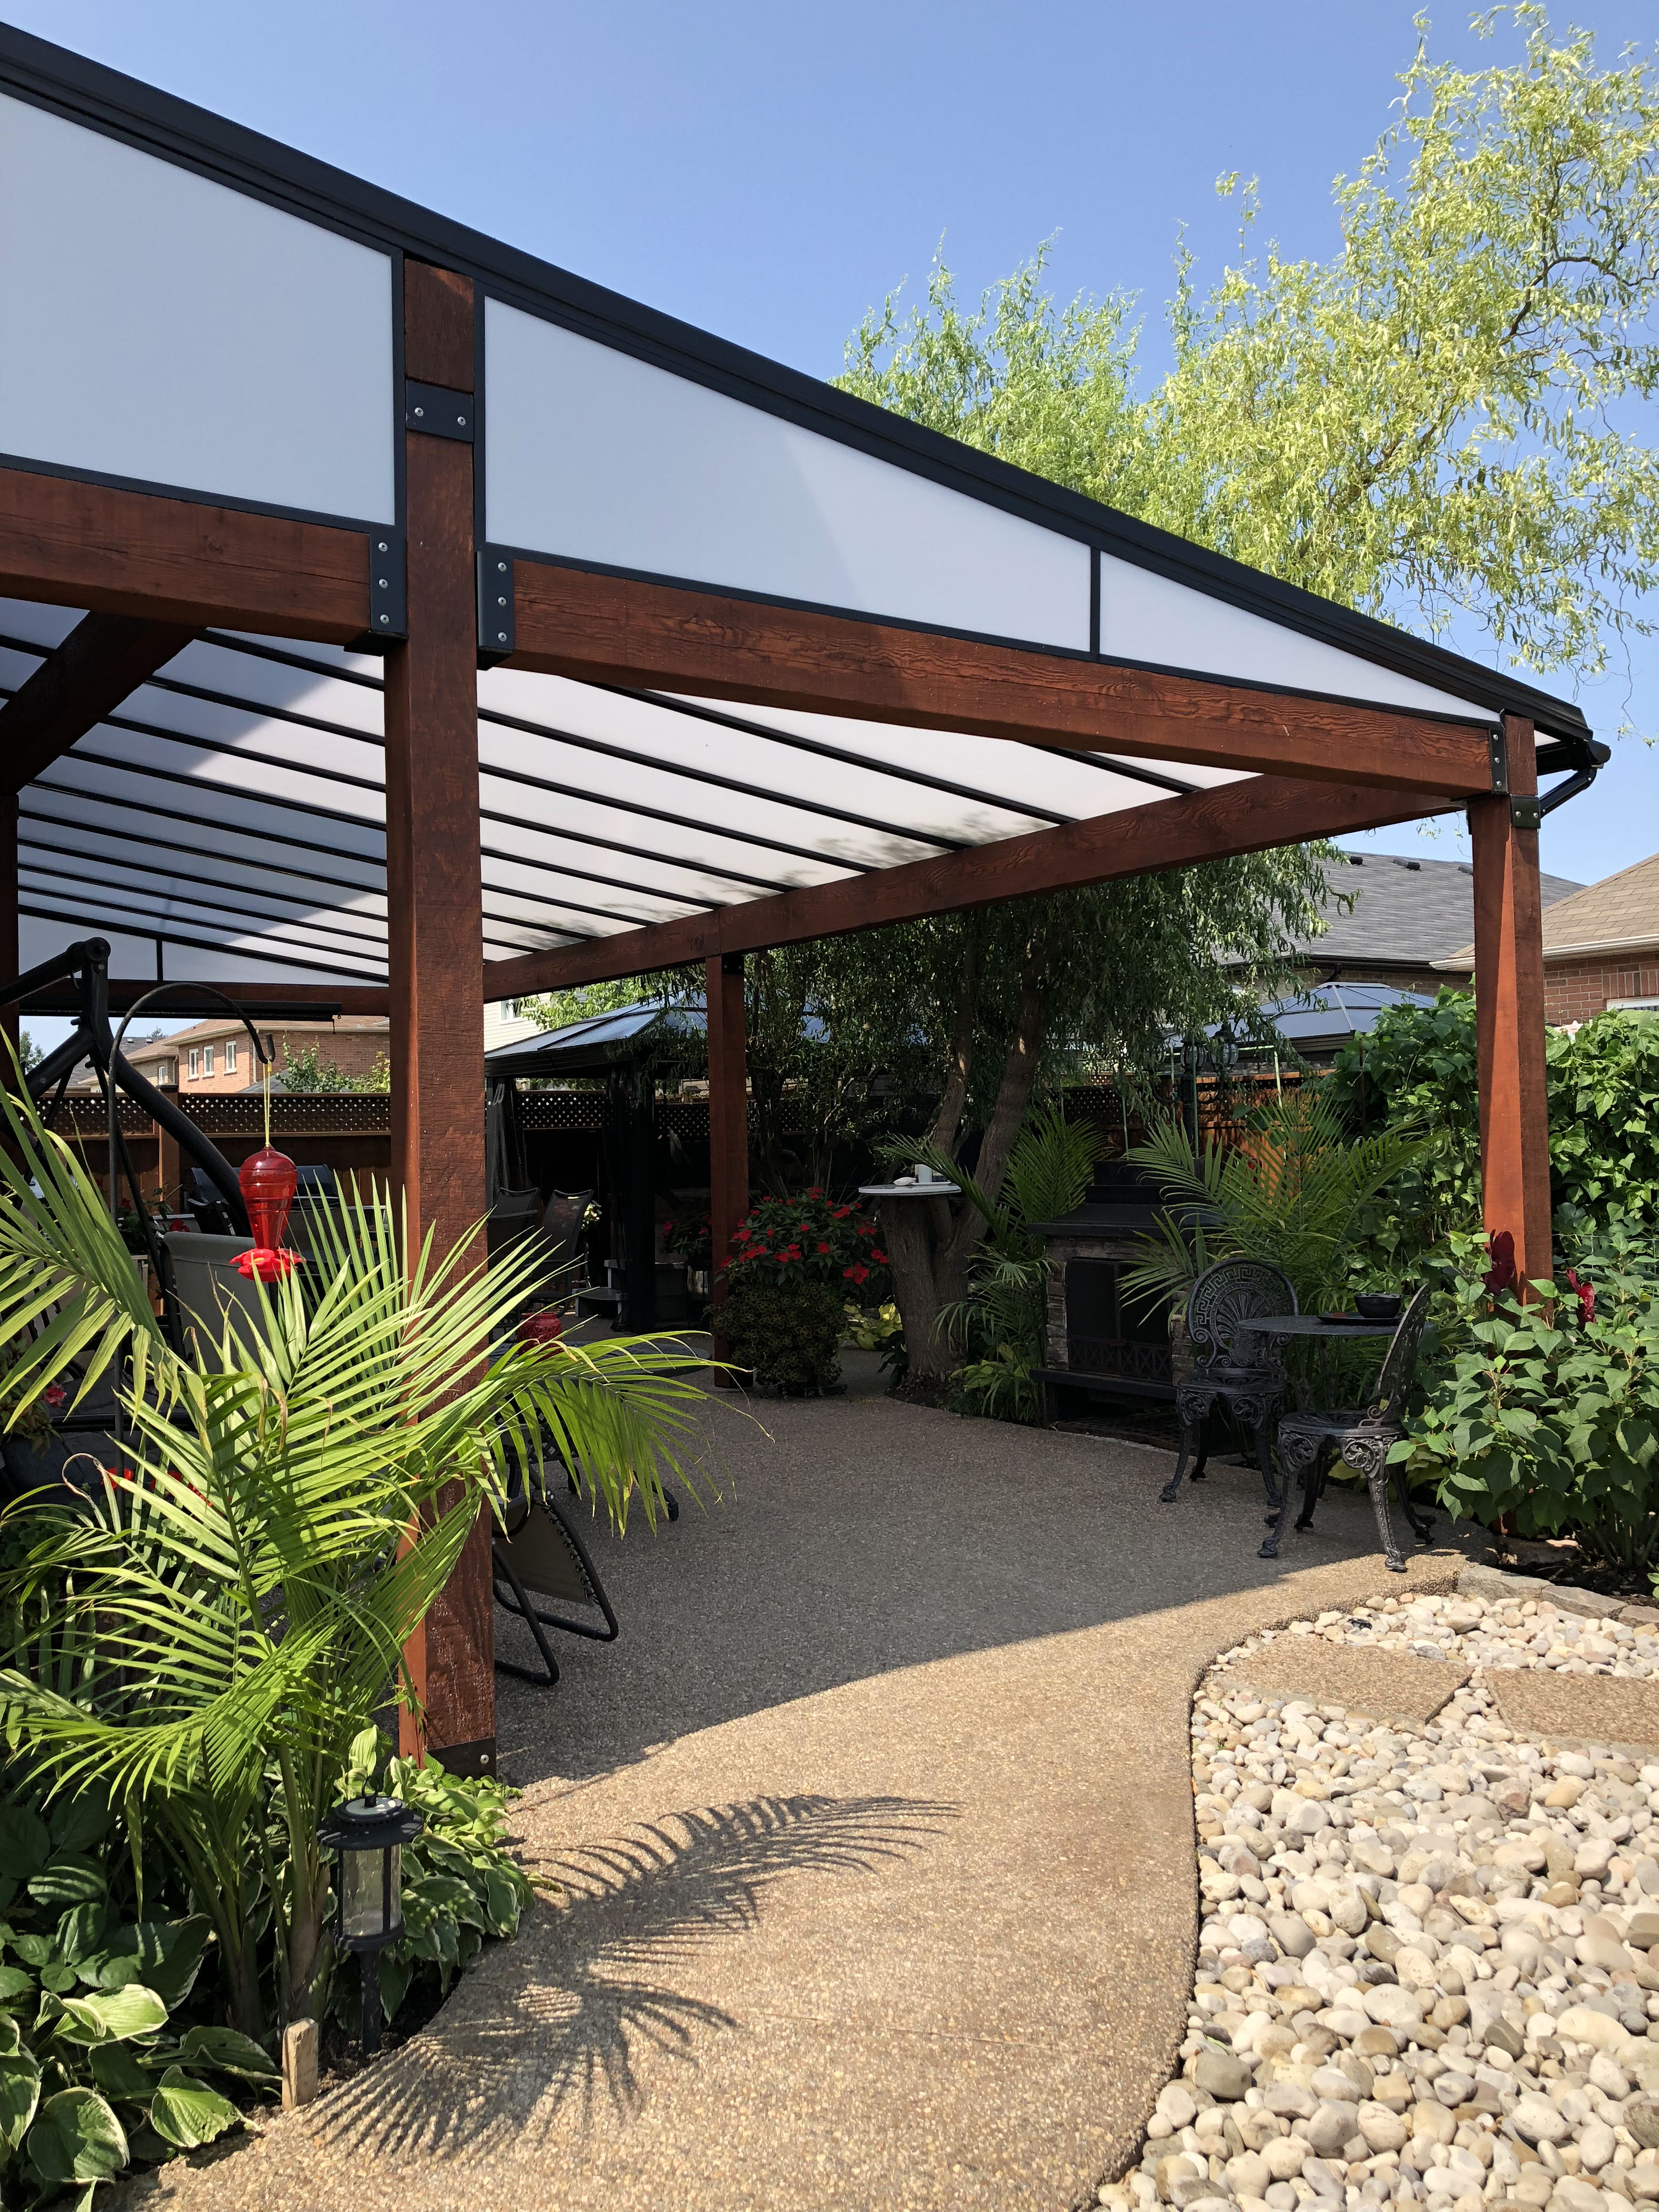 patio cover, deck covering, deck cover, deck roof system, patio covers, patio renovations for backyard